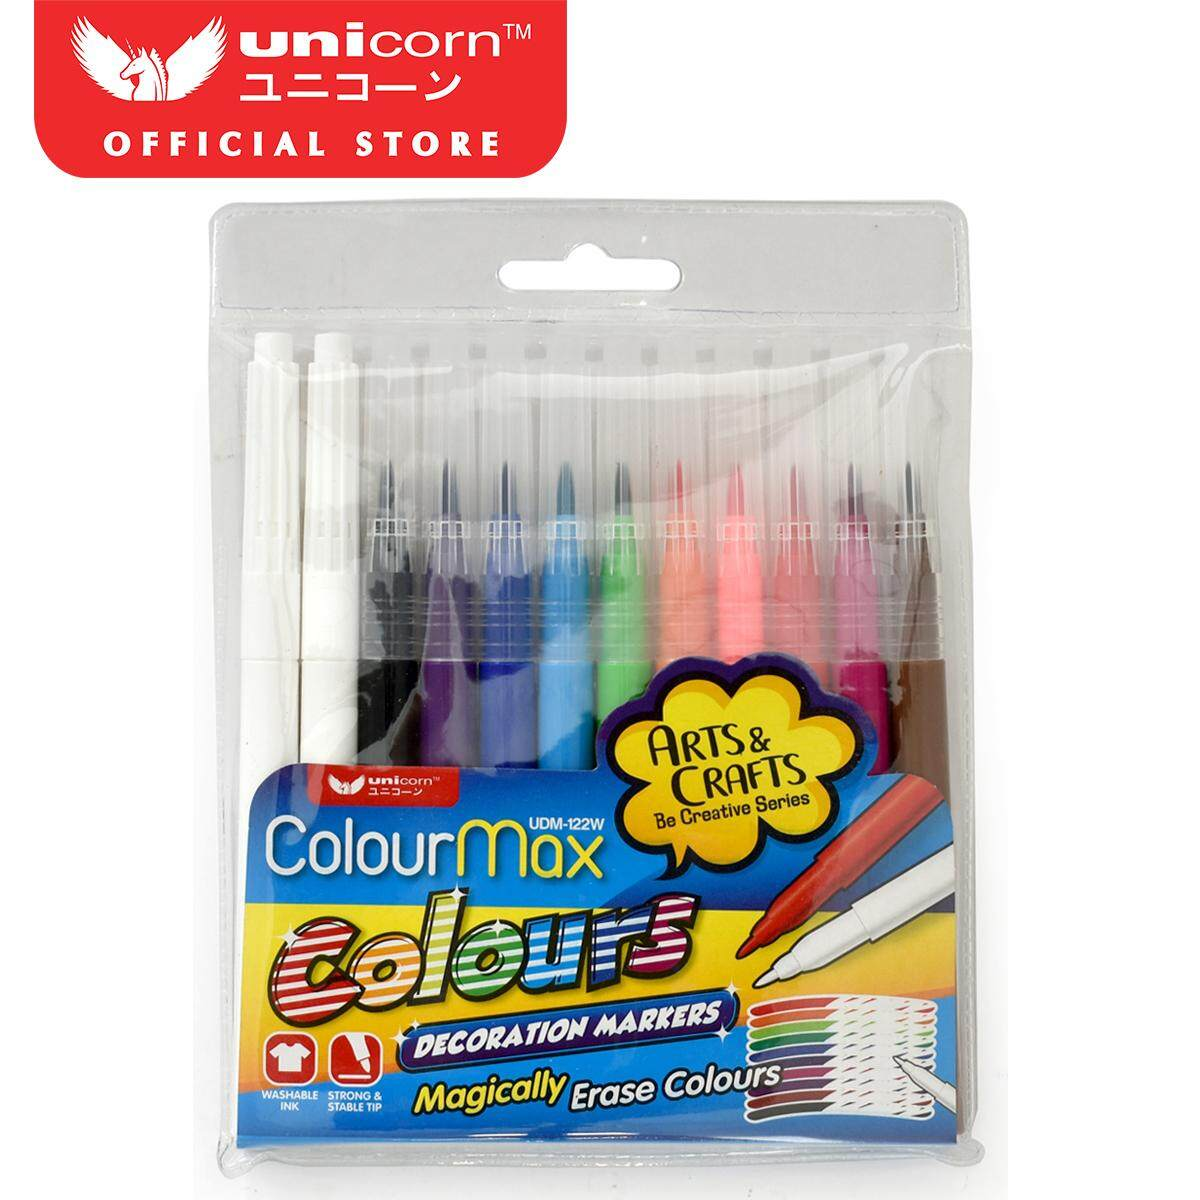 Unicorn Decorative Marker UDM-122W-12'S Asst (12 Pcs)